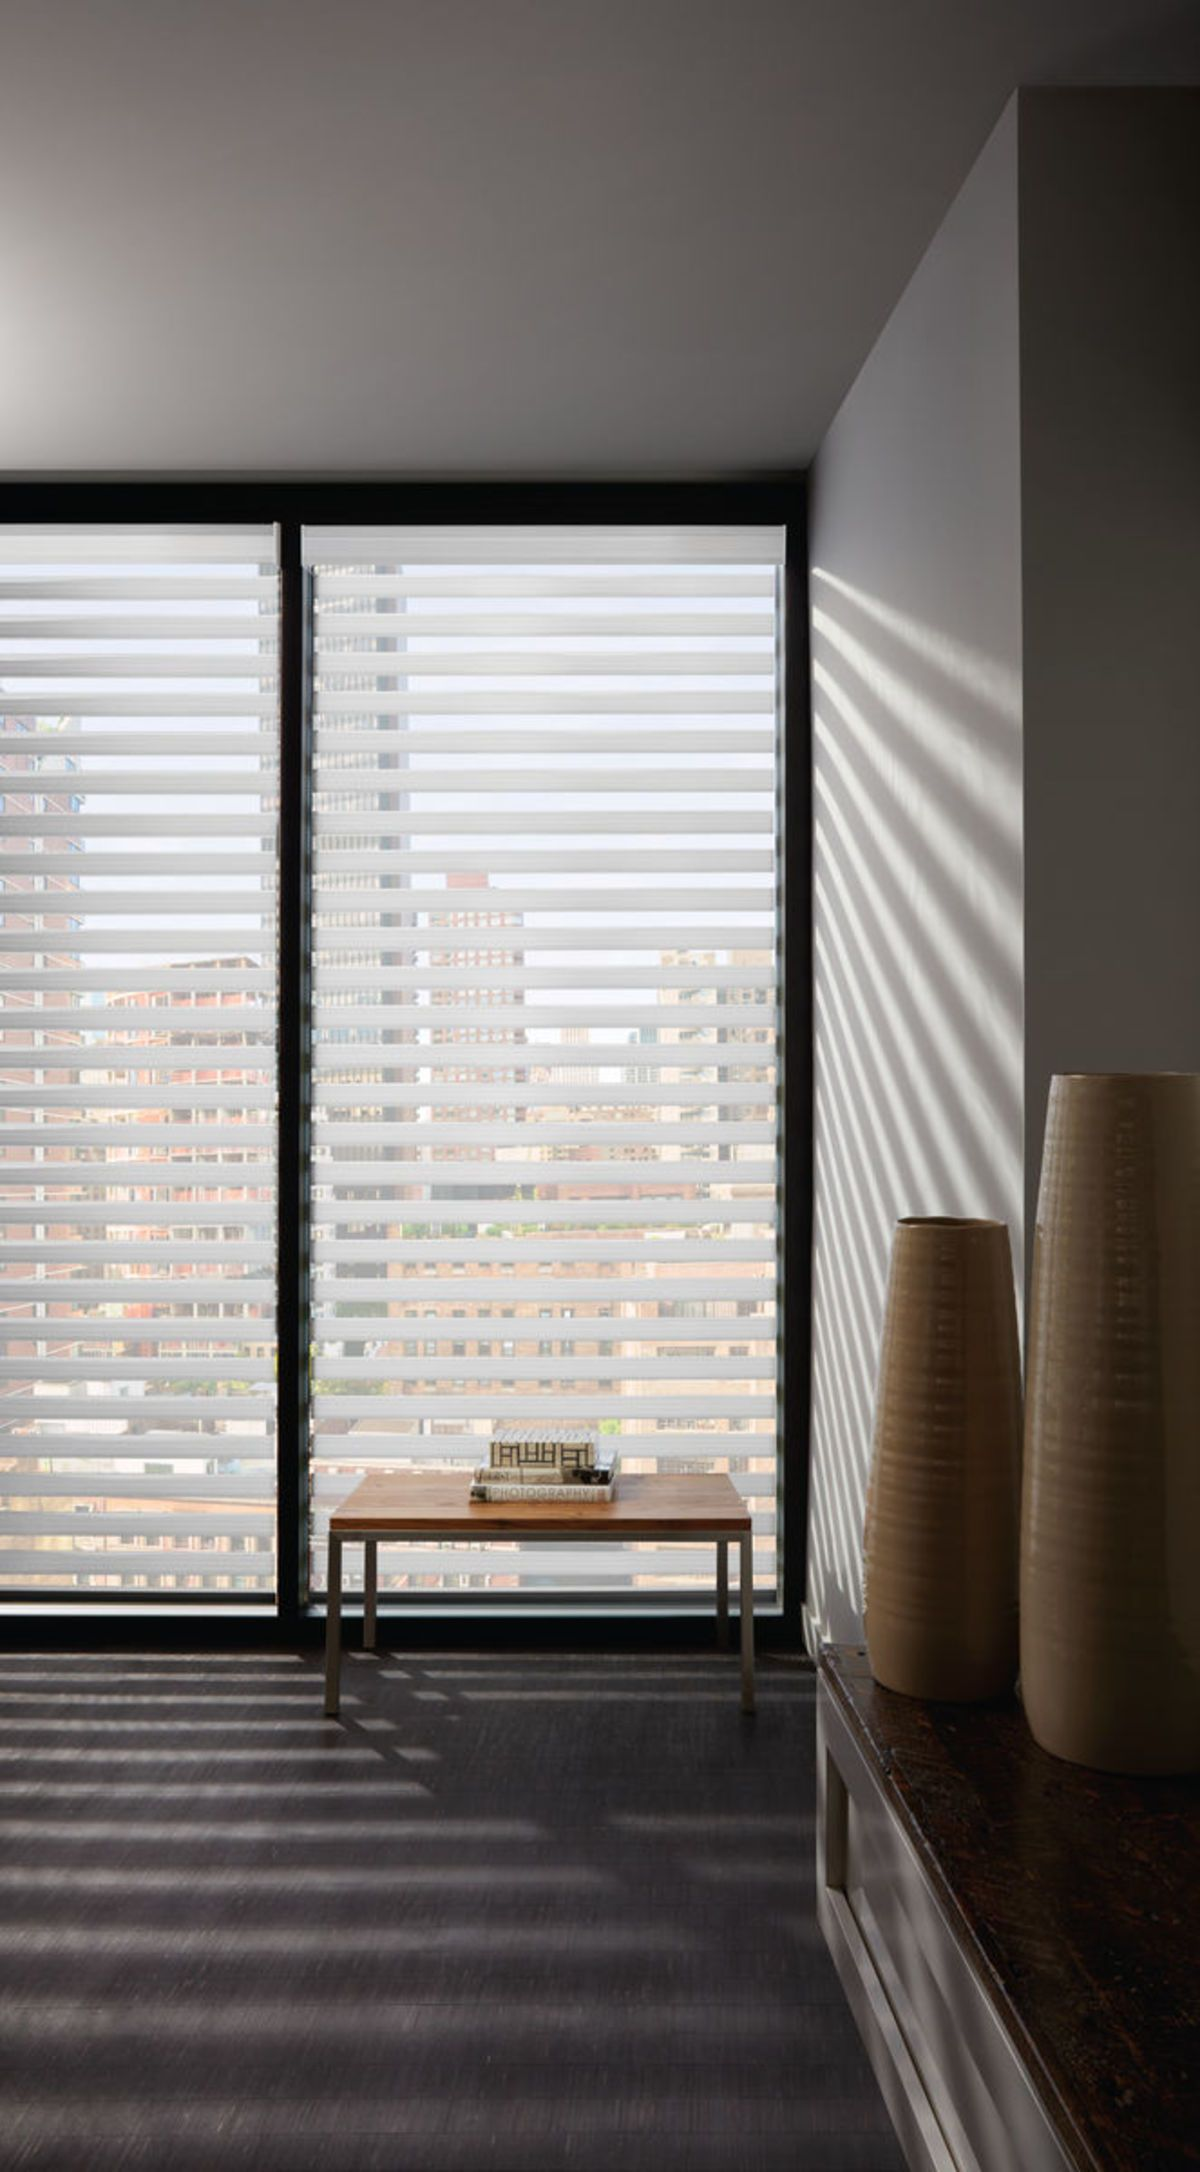 Hunter Douglas Designer Banded Shades Window Treatments Blinds Light Filtering Room Darkening Privacy View Through